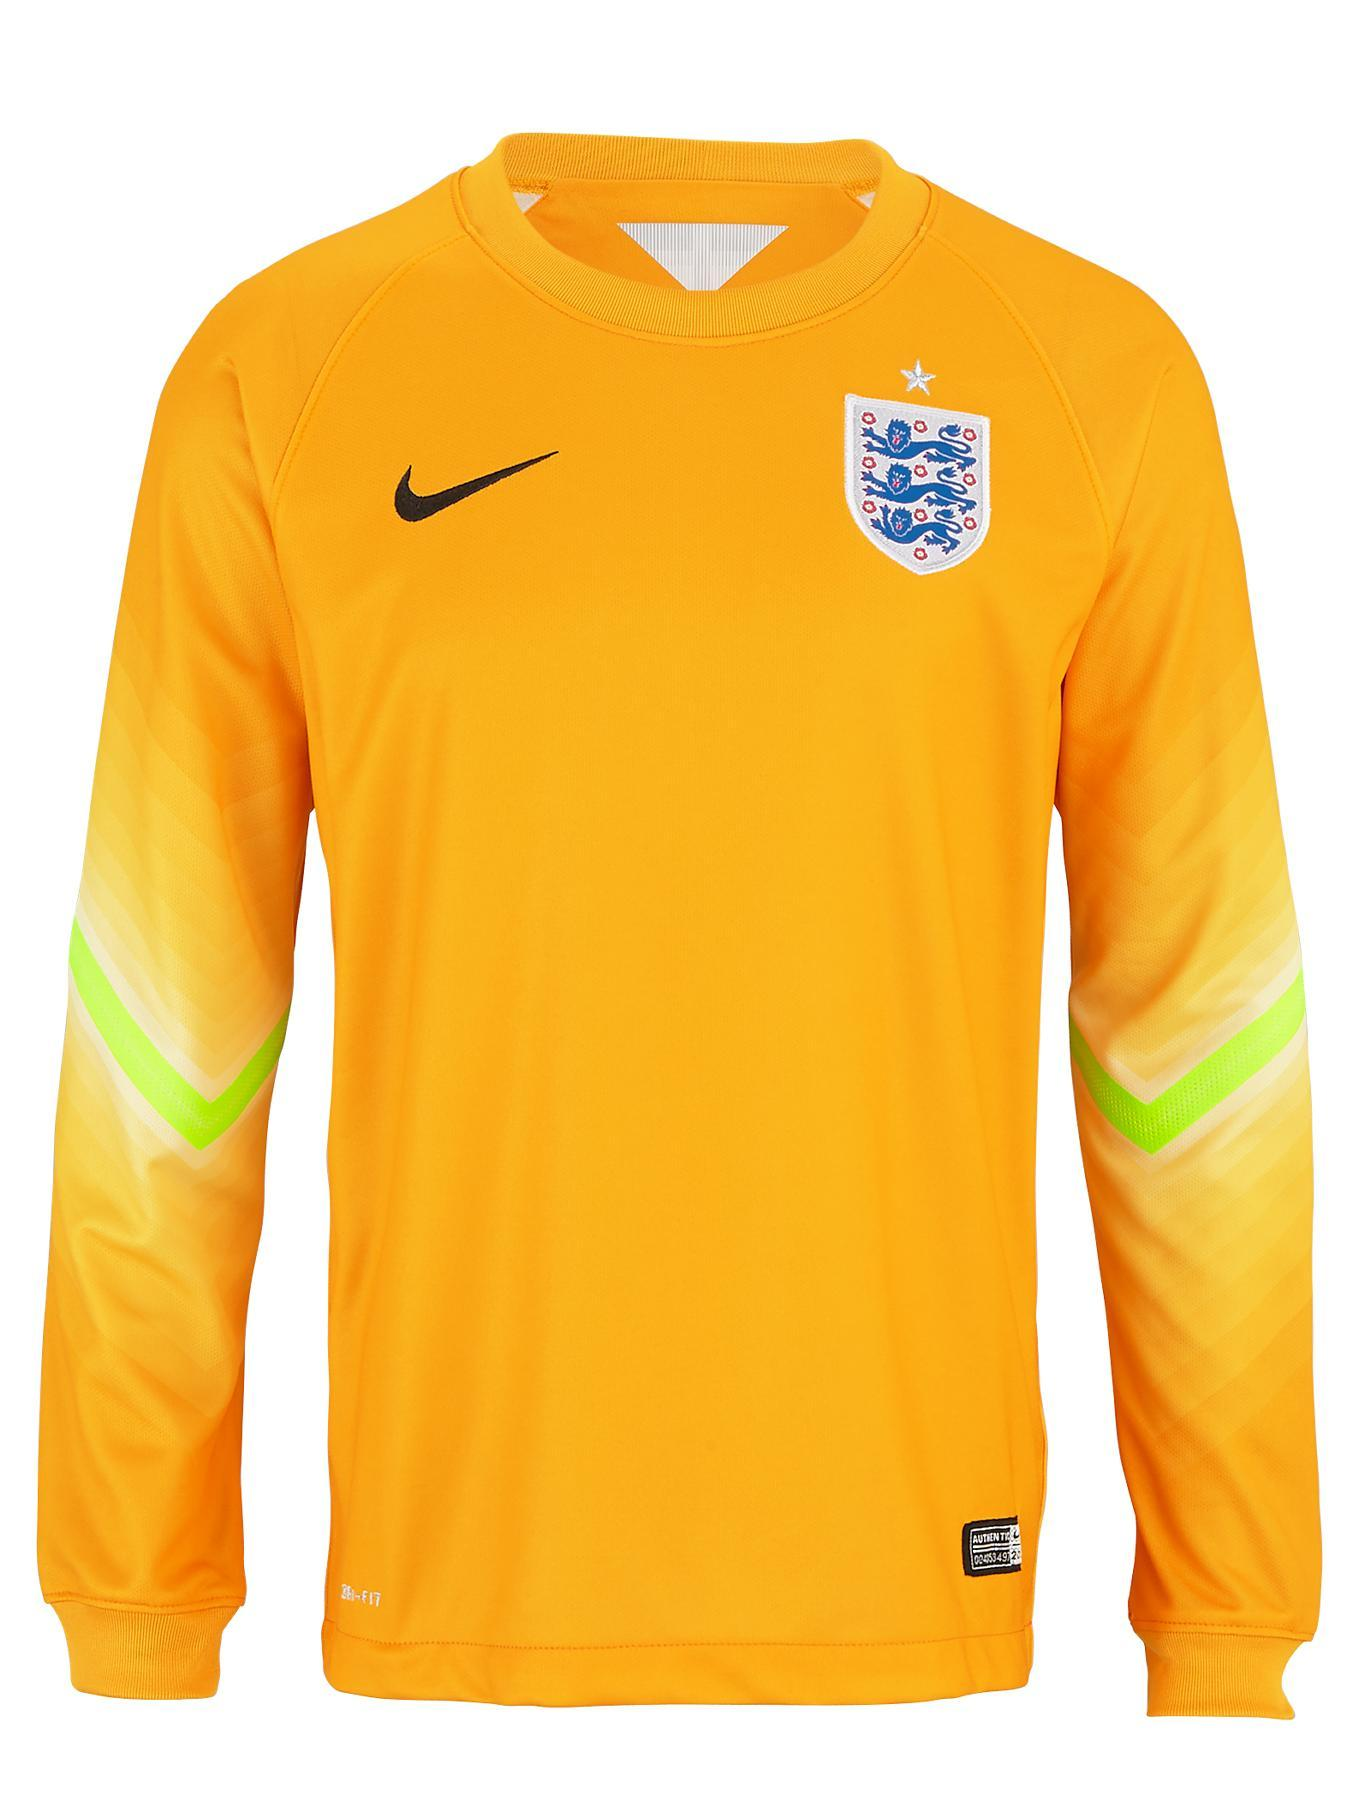 England 2014/15 Junior Long Sleeved Goal Keeper Shirt, Yellow